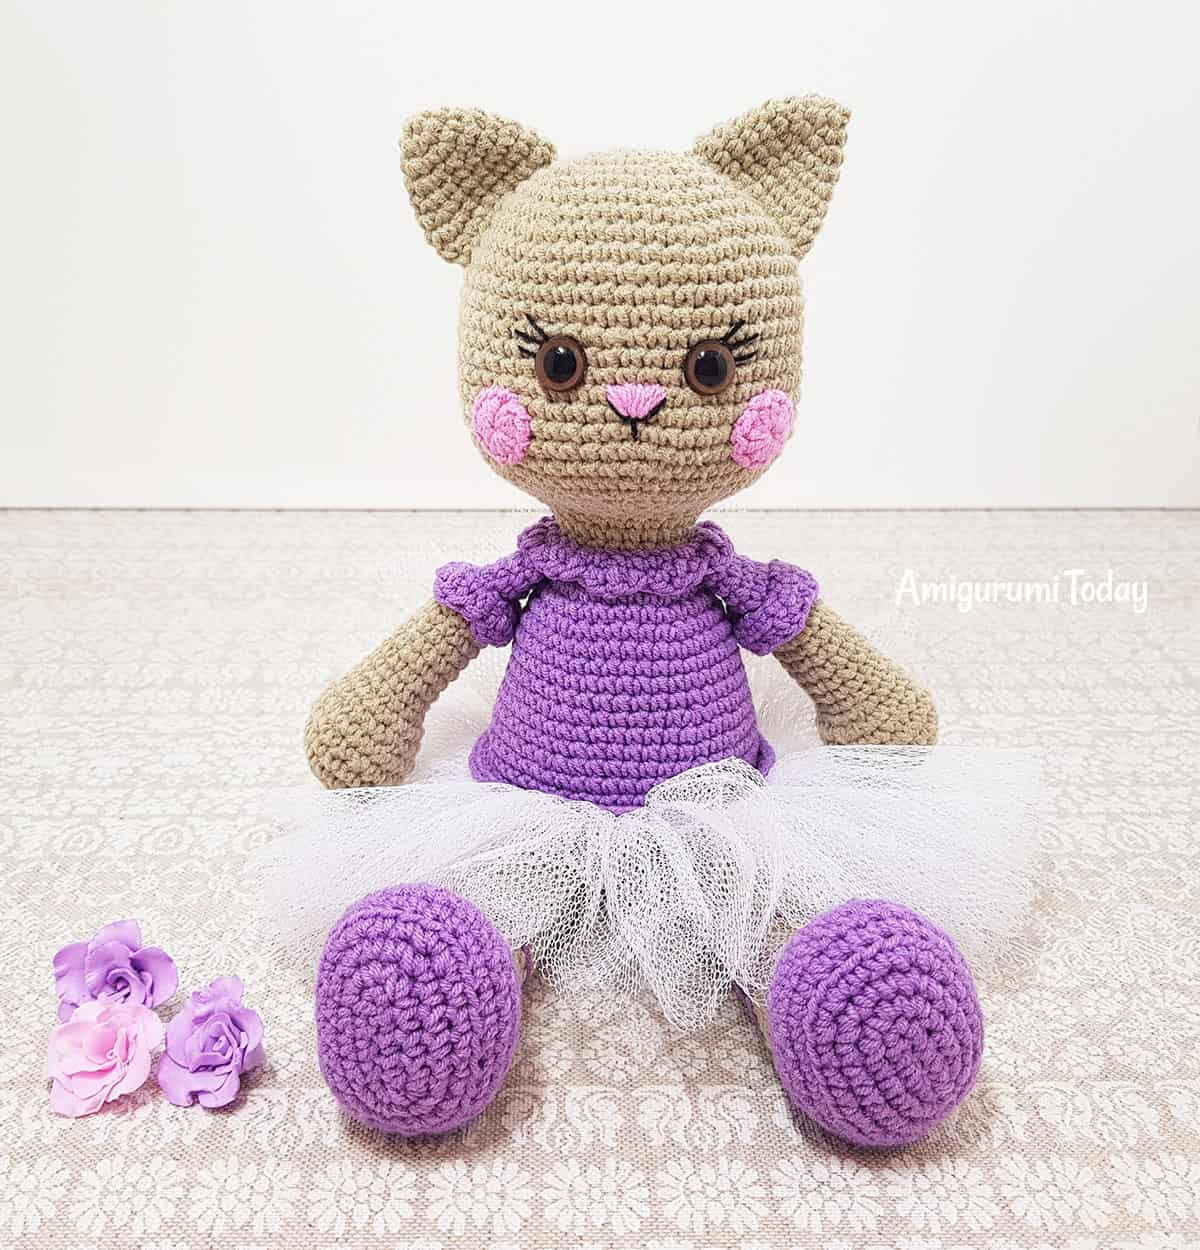 Ballerina cat doll amigurumi pattern by Amigurumi Today